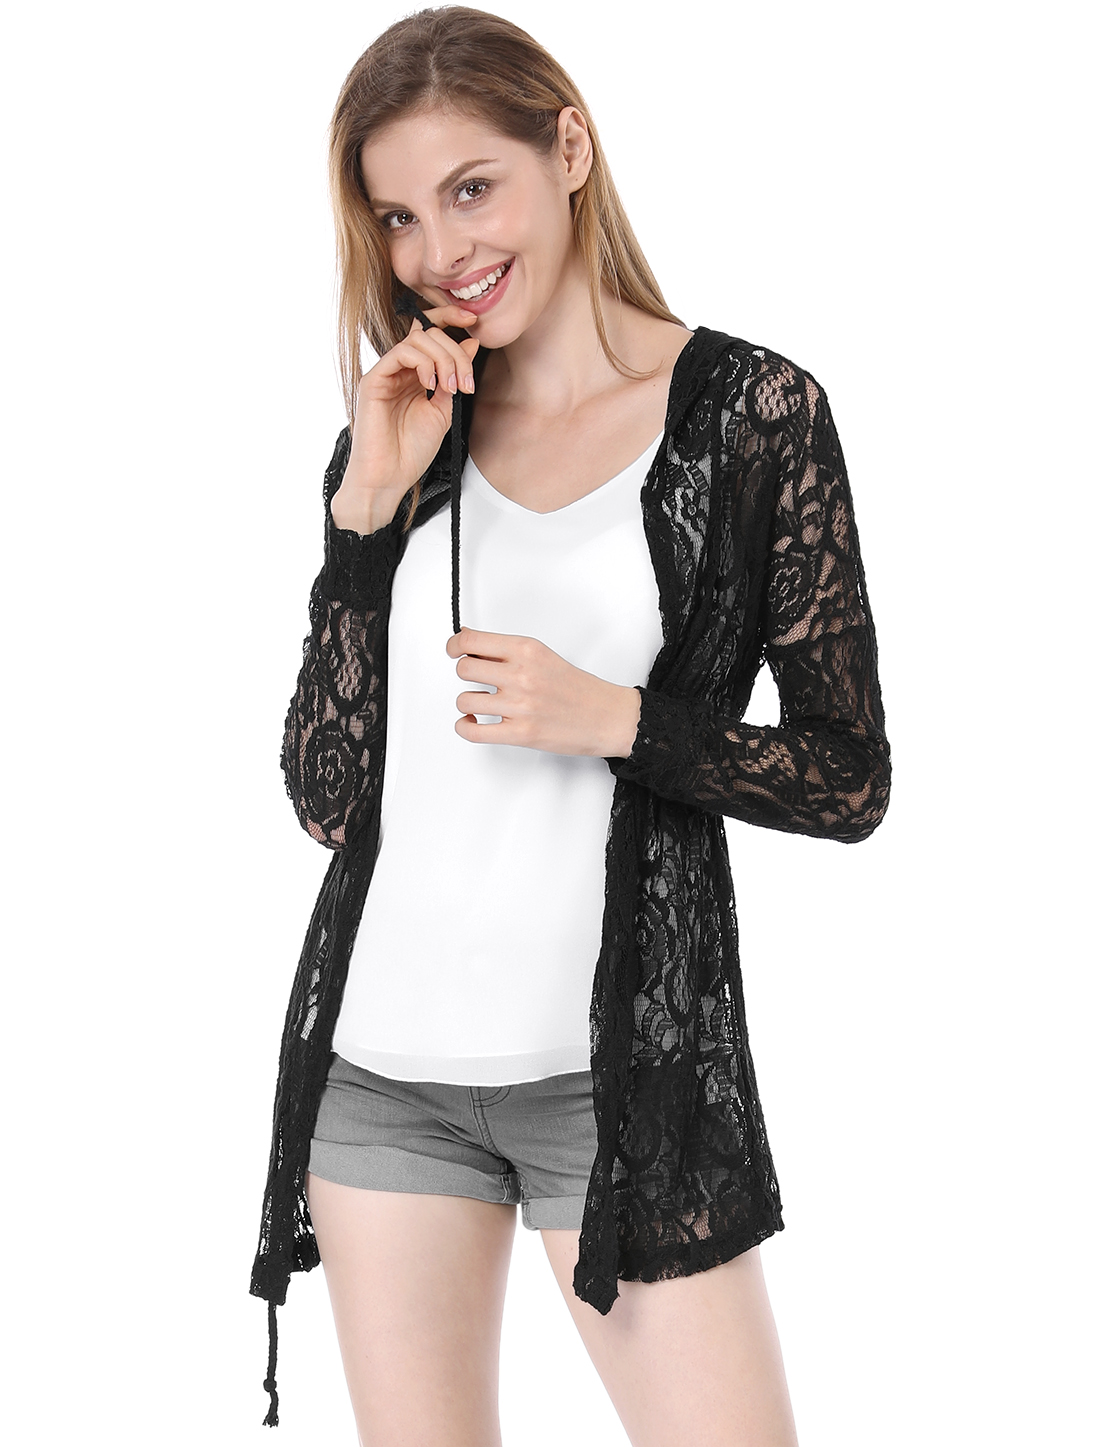 Woman New Fashion Drawstring Waist Semi-Sheer Lace Design Black Coat L